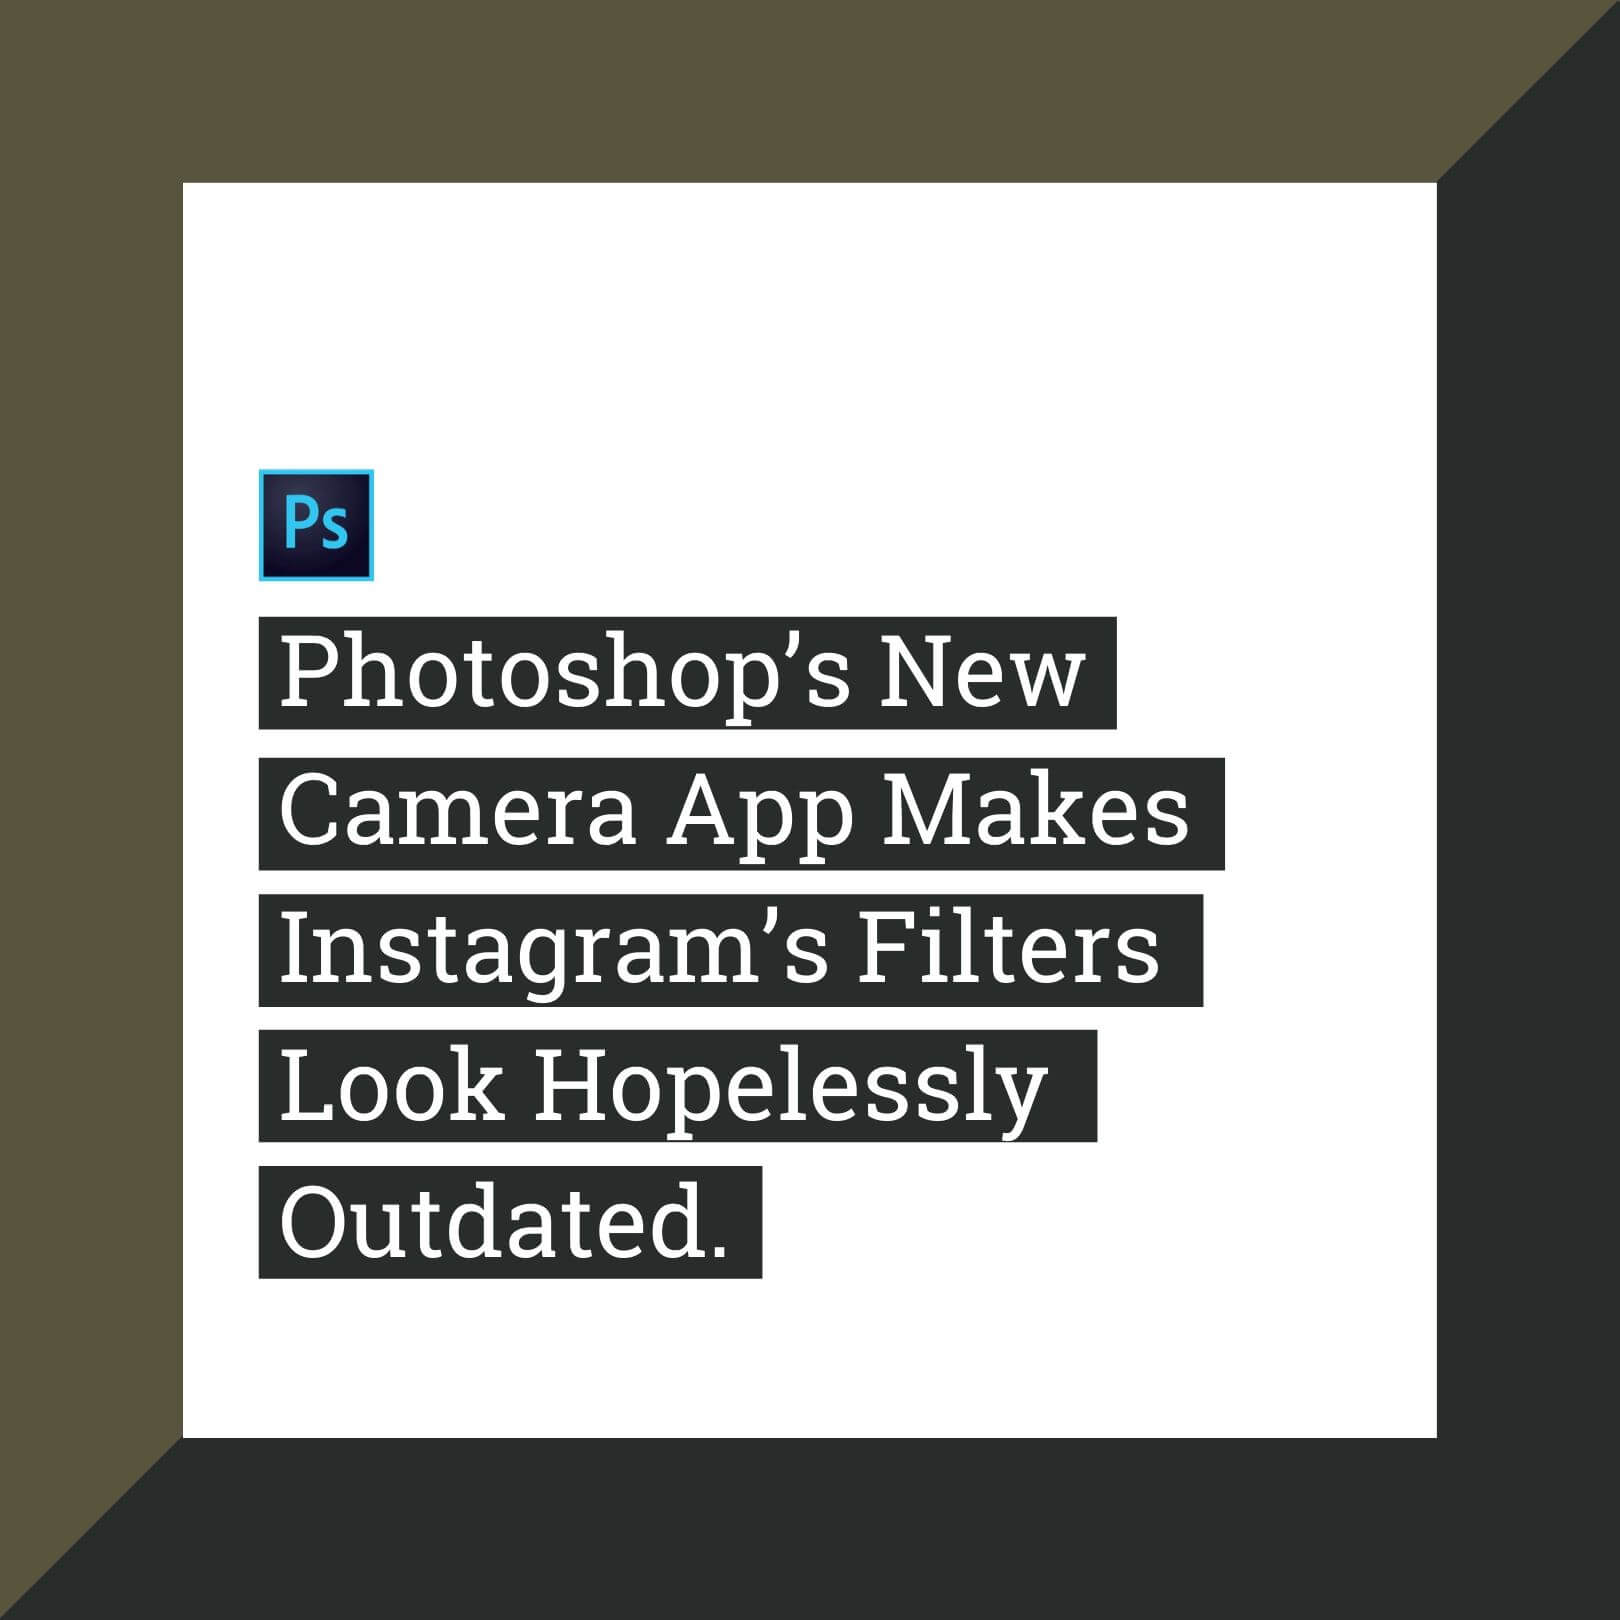 Photoshop's New Camera App